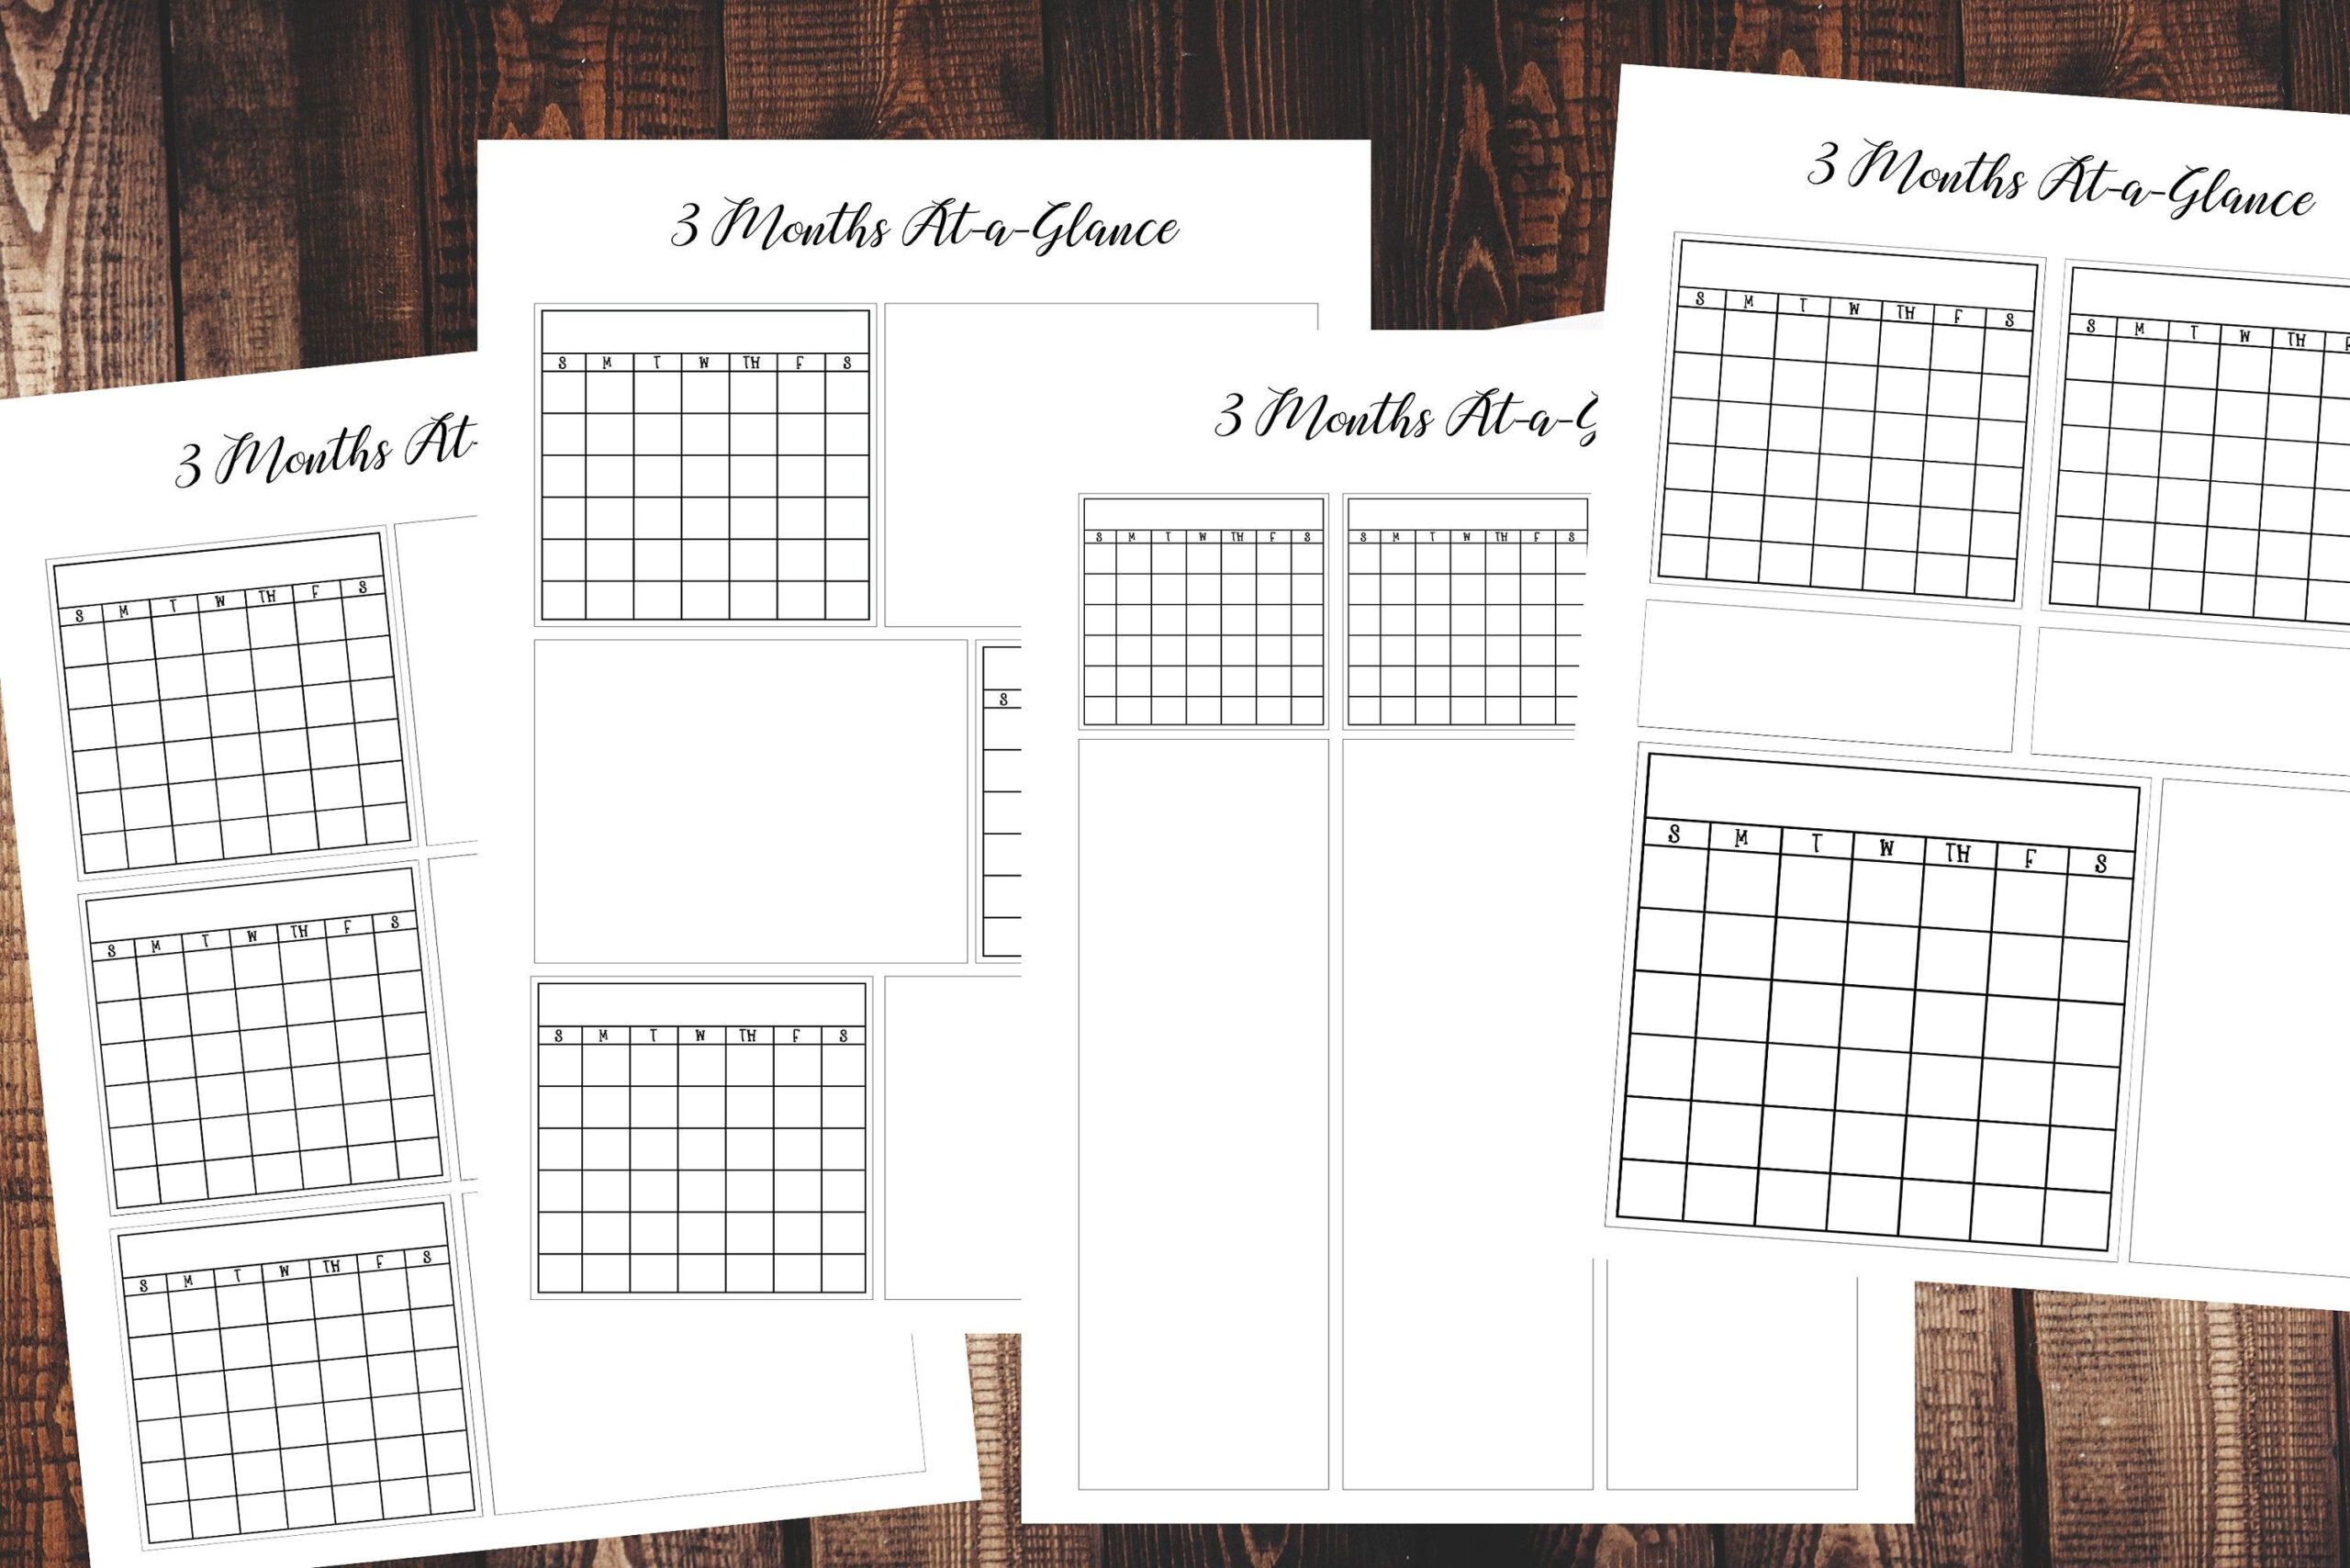 Calendar Printables Three 3 Month At-A-Glance Printable